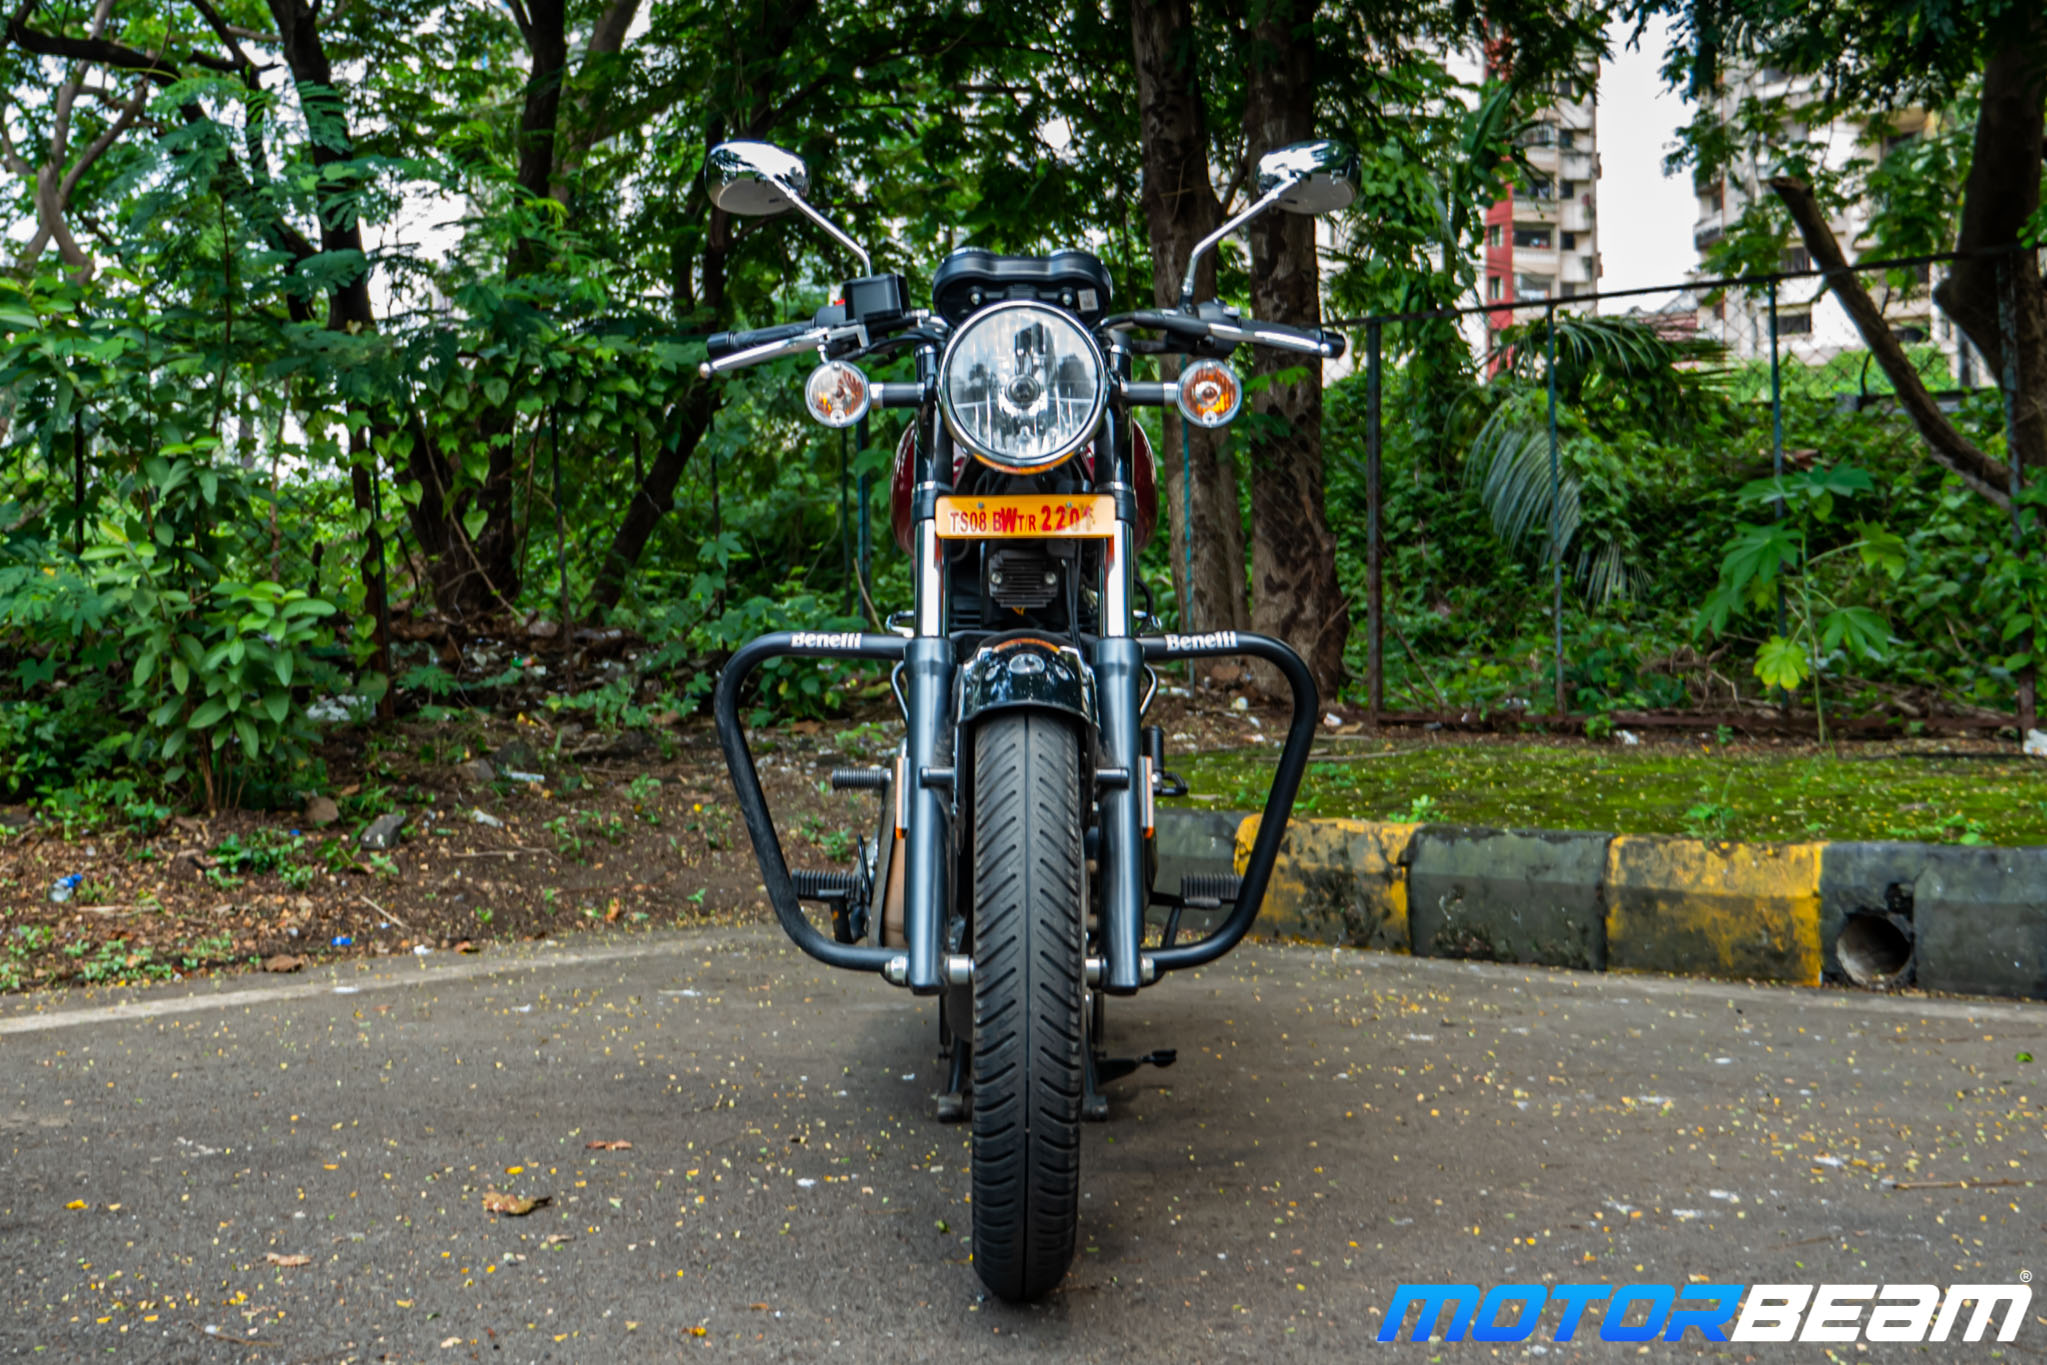 2020 Benelli Imperiale 400 Review 9